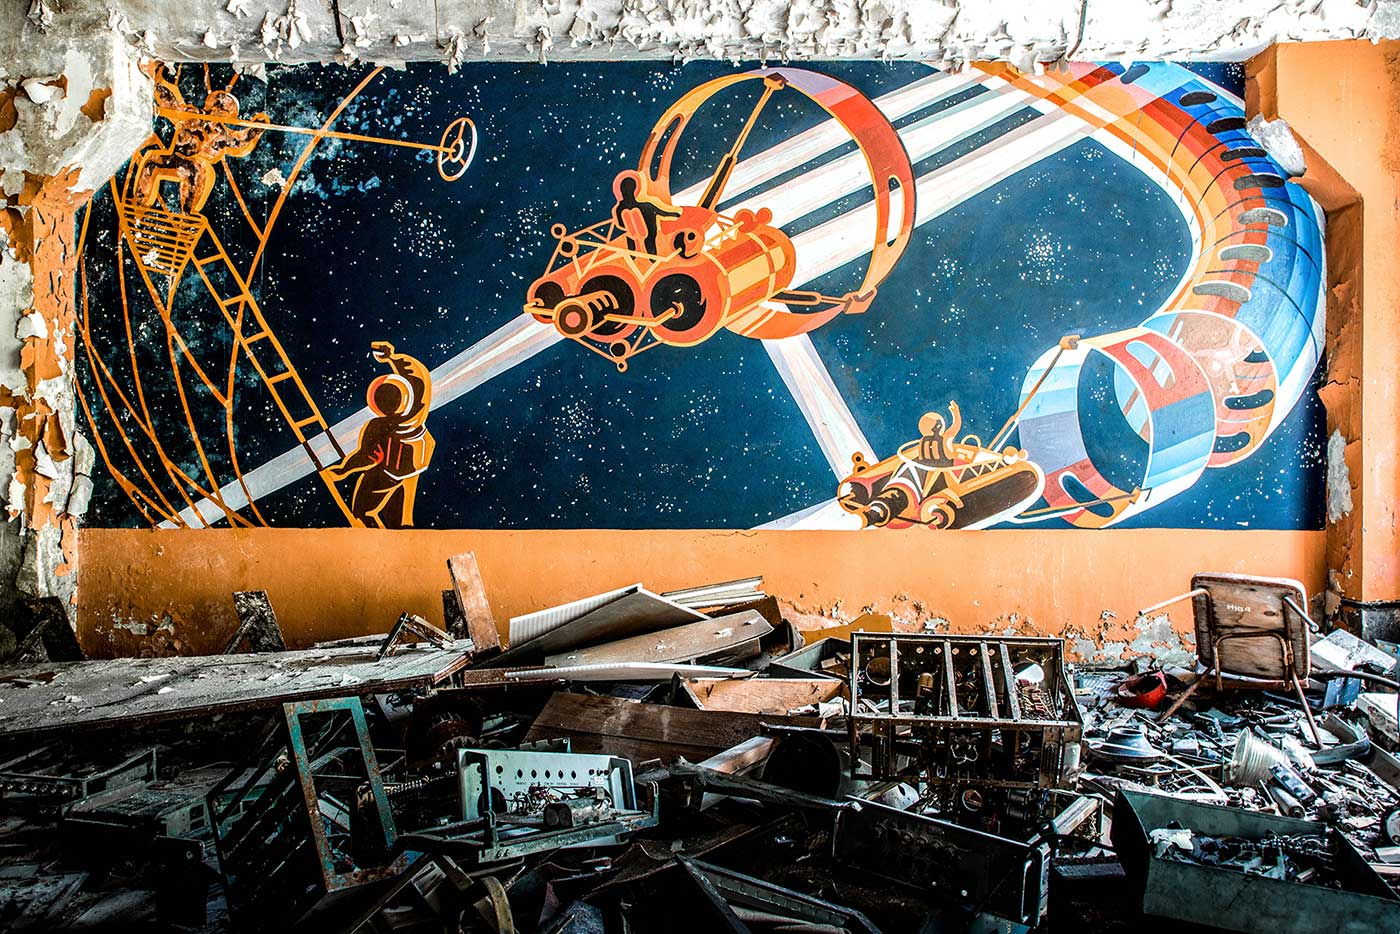 By the 1980s, much Soviet art and literature was preoccupied with the conquest of space. This colourful mural inside the Duga-1 radar control centre, near the Chernobyl NPP, depicts Soviet cosmonauts building an advanced future space station.